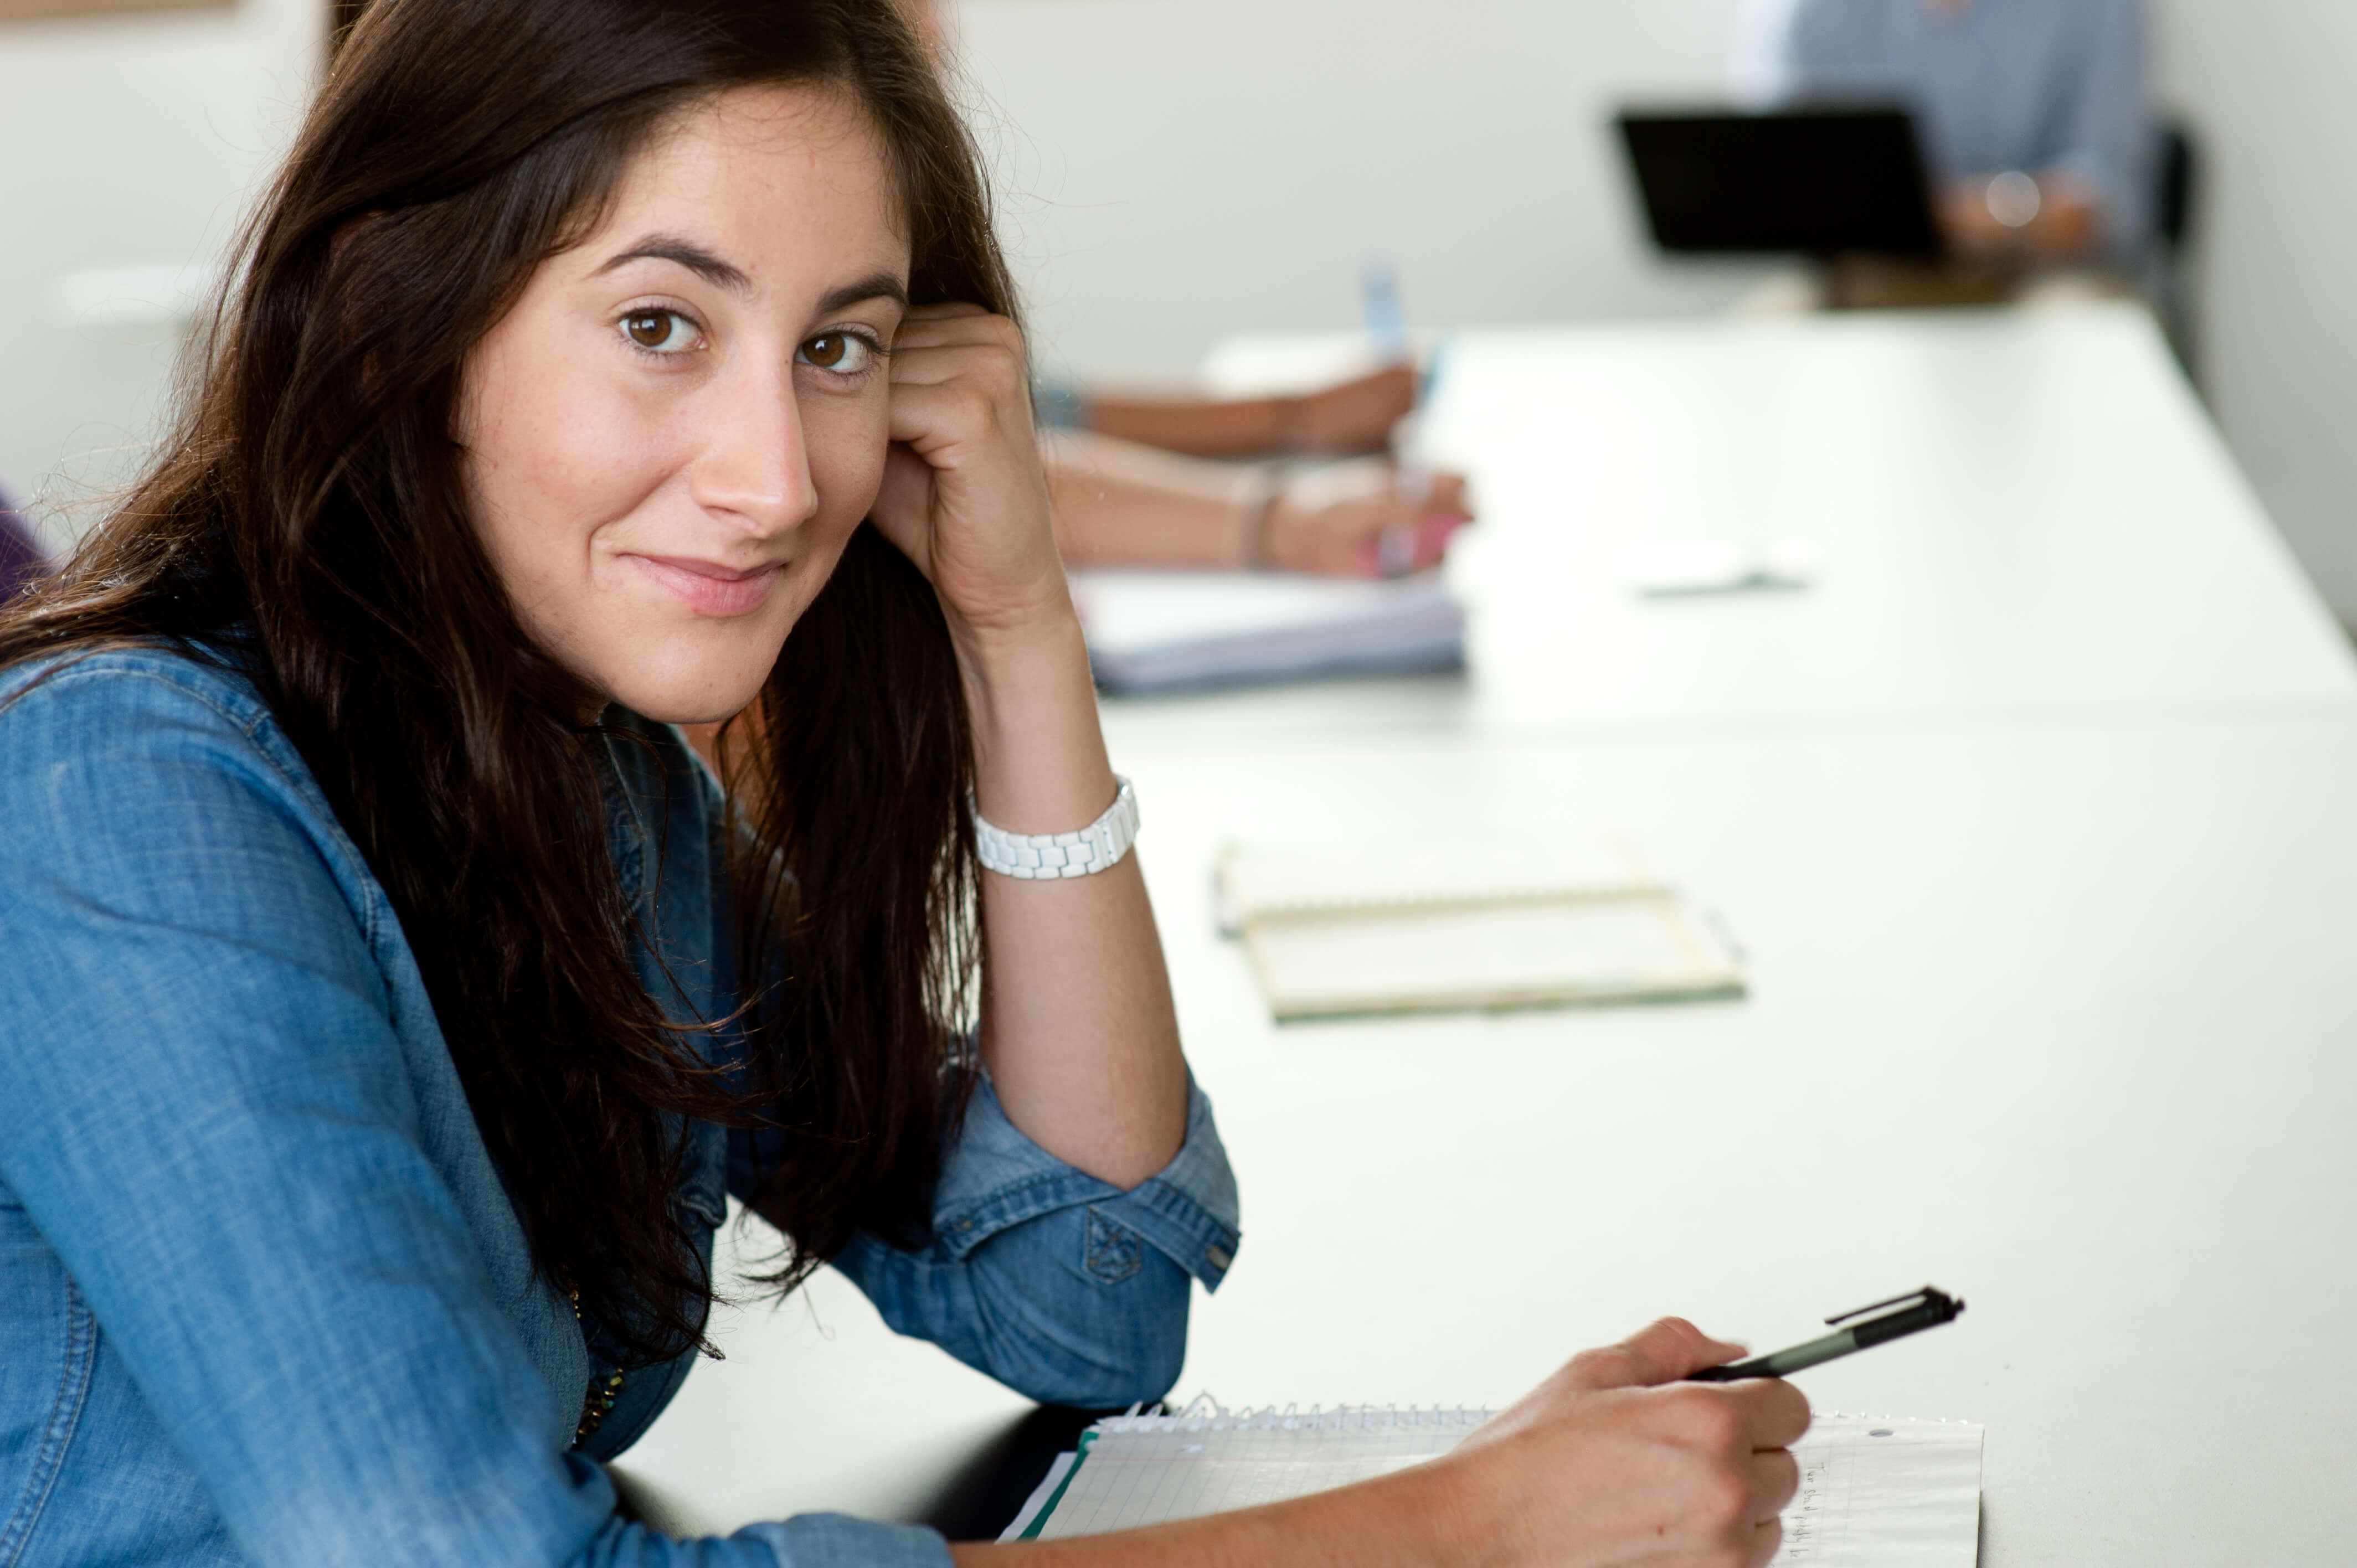 close-up photo of woman with long dark hair sitting at classroom table smiling